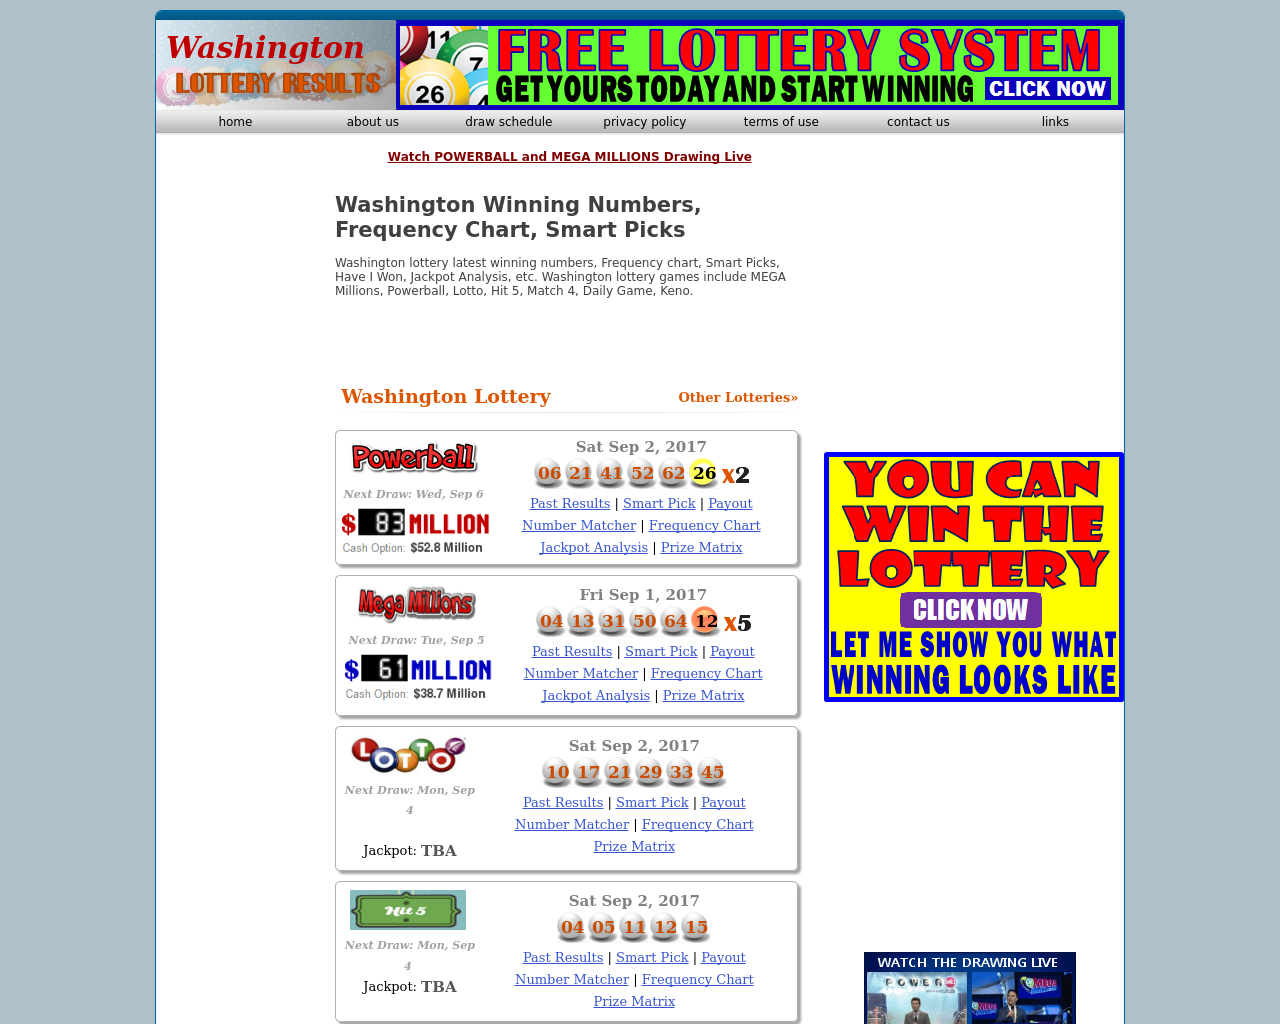 Washington-Lottery-Live-Advertising-Reviews-Pricing